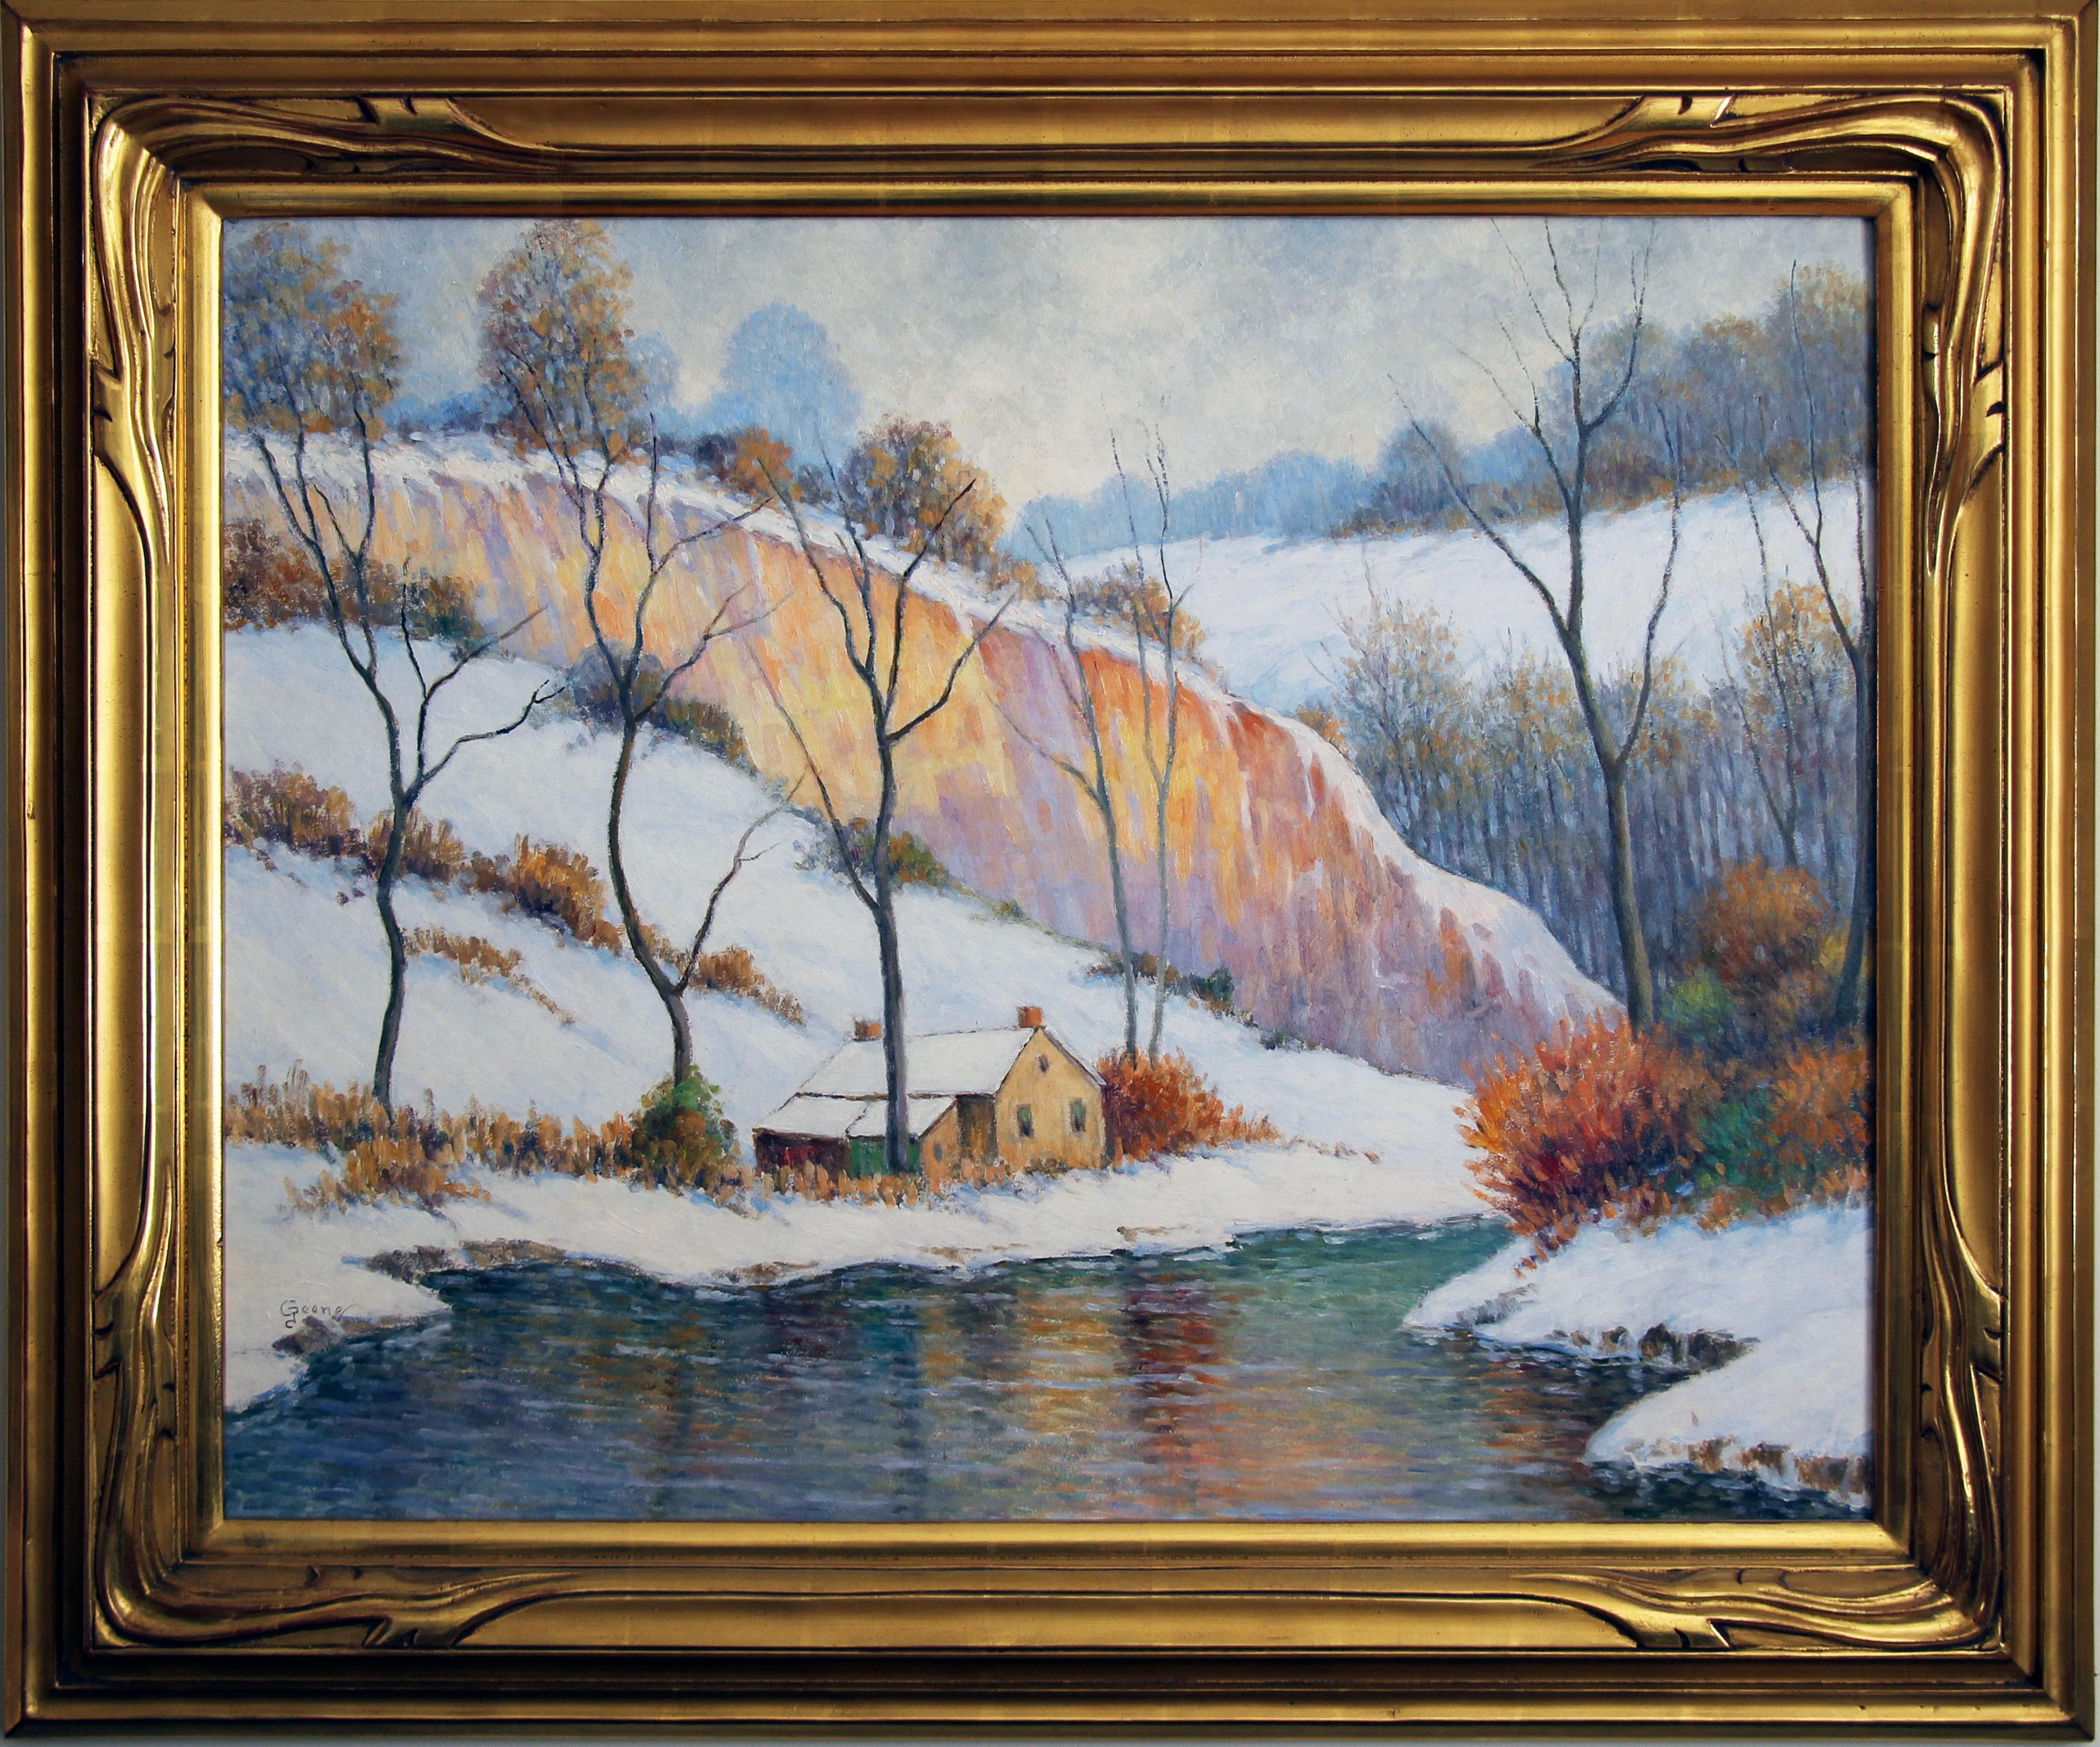 Winter Sunset, American Impressionist Snowy Landscape, Oil on Board, Signed